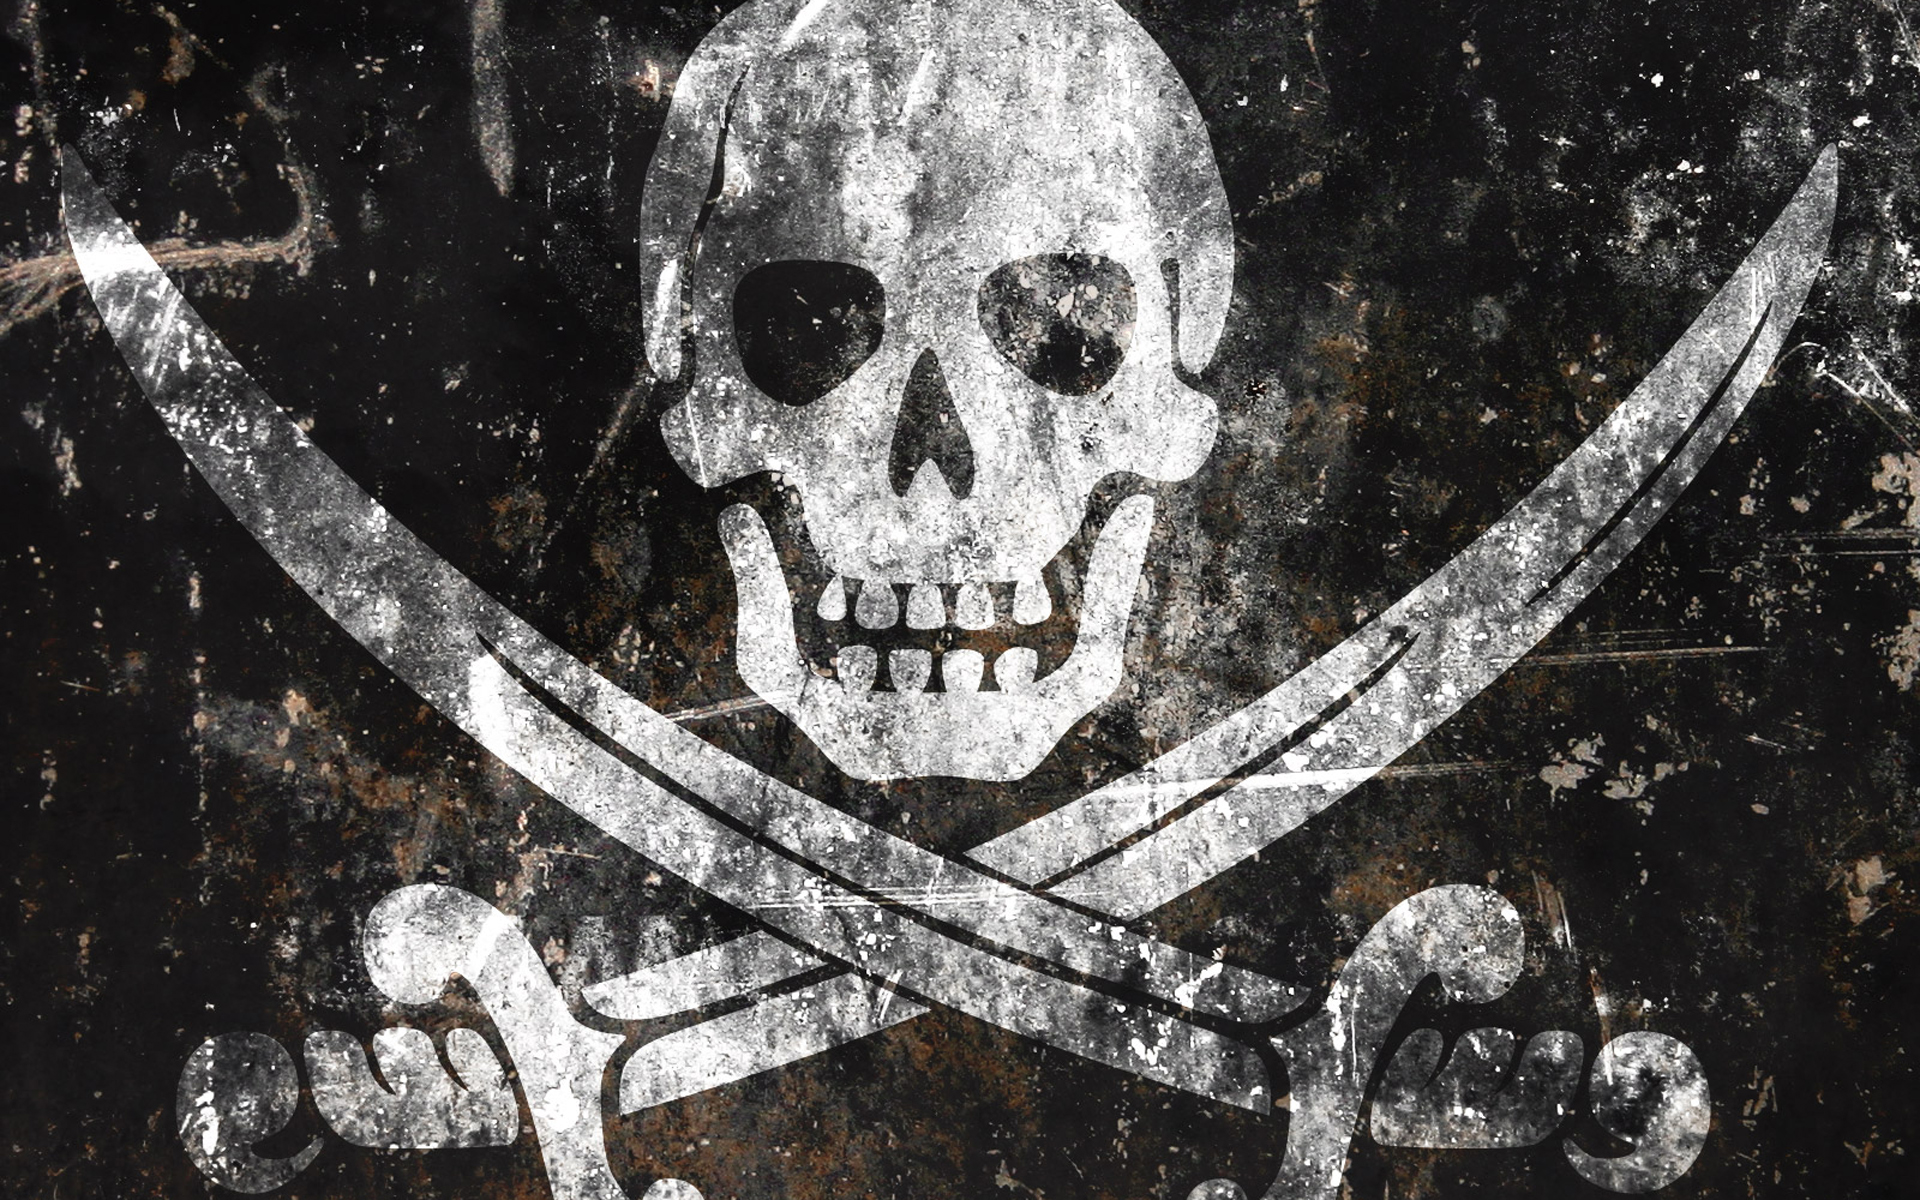 Up Pirate Flag Wallpapers, Battered Up Pirate Flag Myspace Backgrounds ...